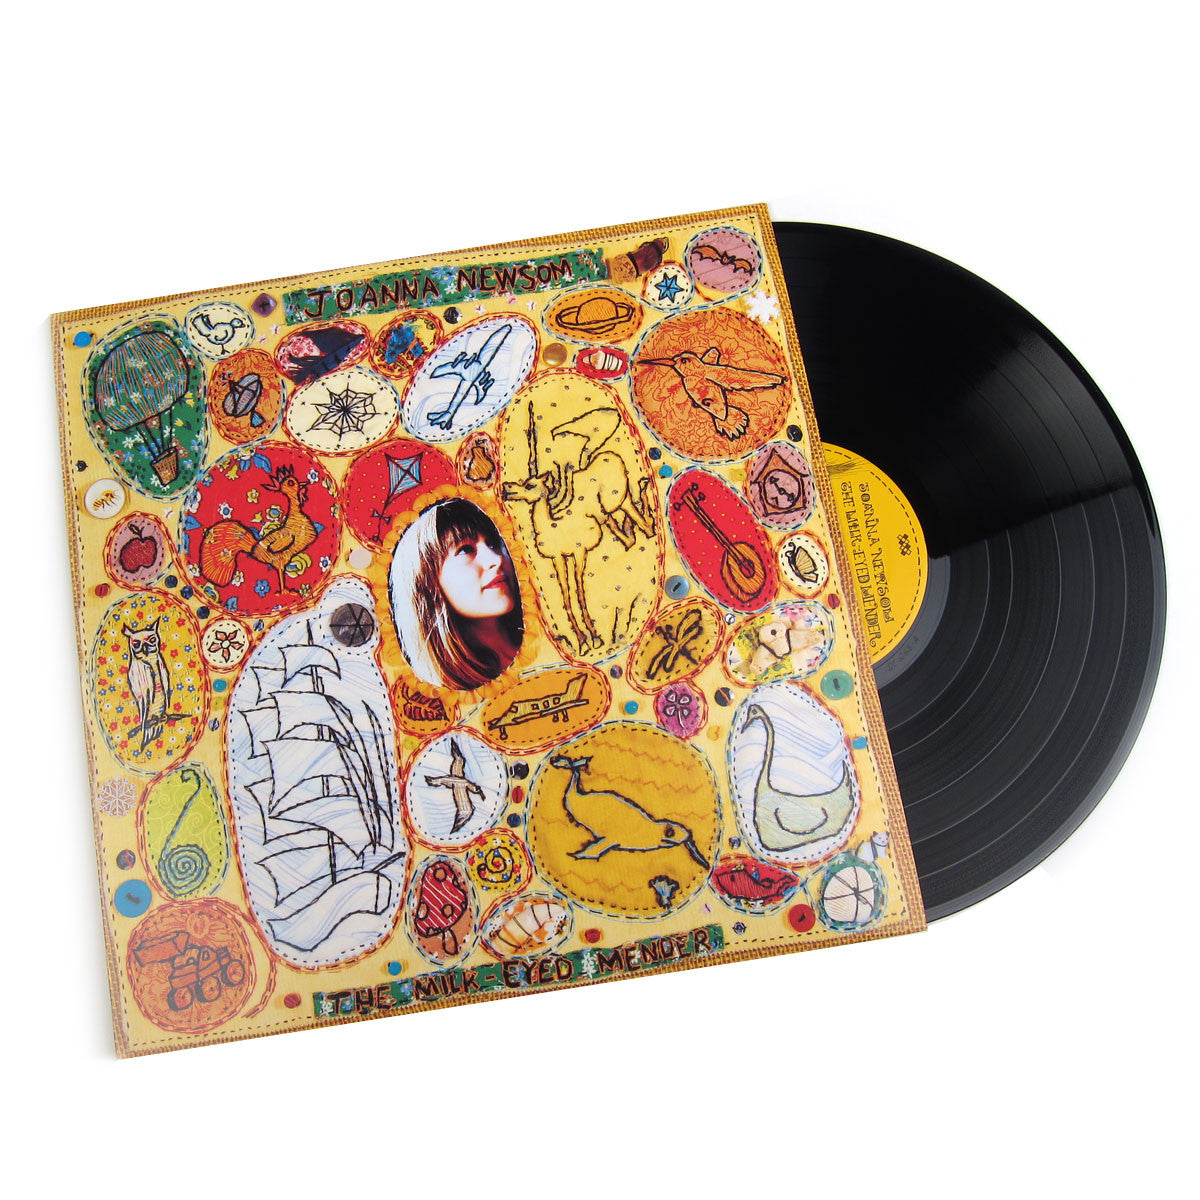 Joanna Newsom: The Milk-Eyed Mender Vinyl LP